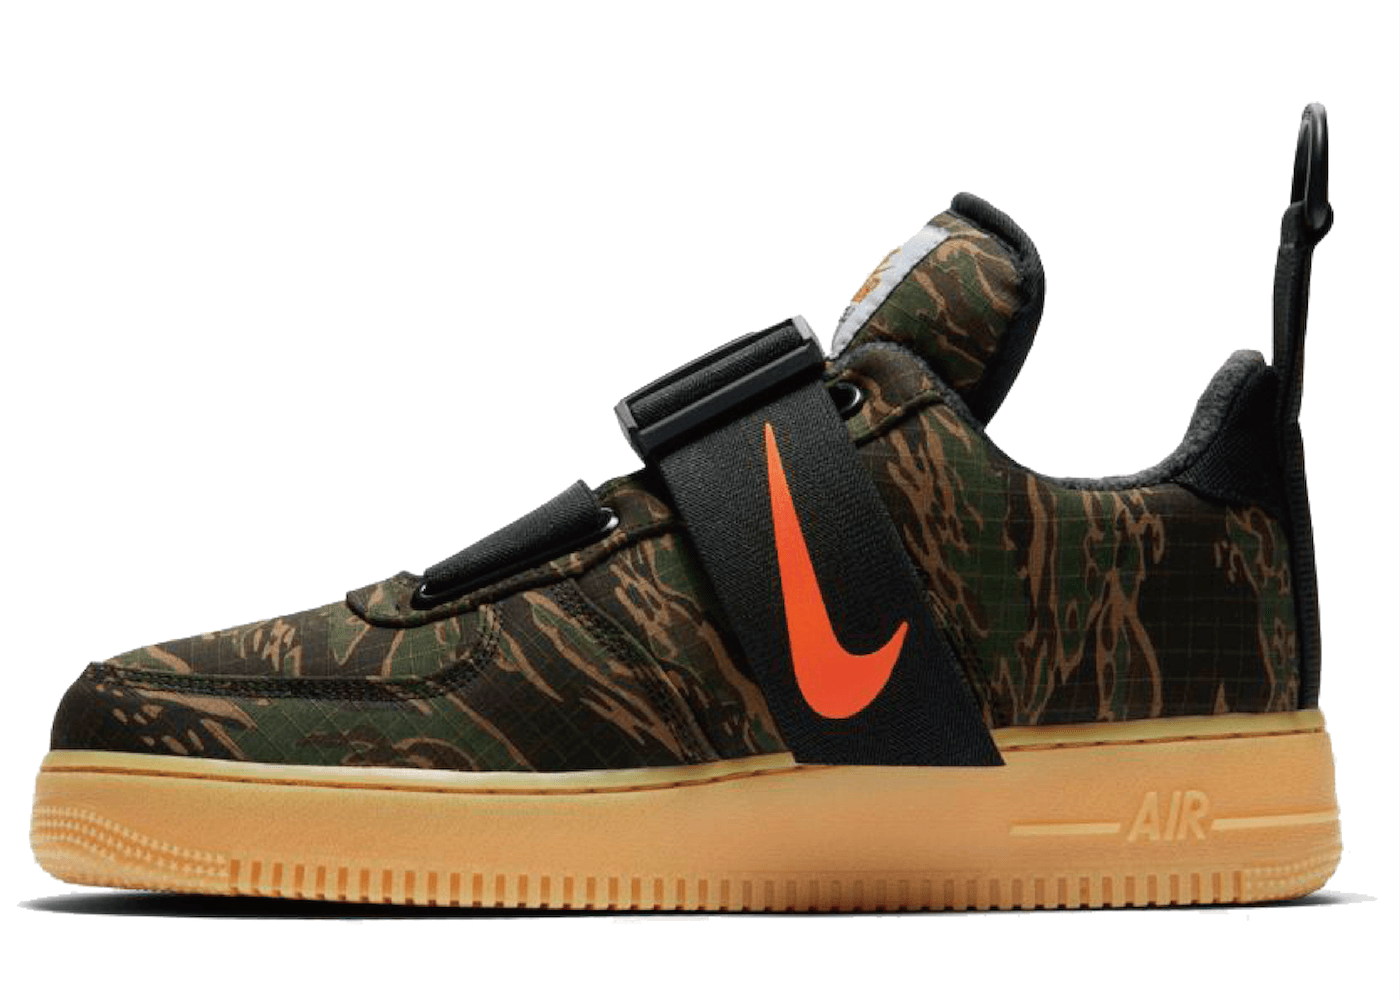 Nike Air Force 1 Low Utility Carhartt WIP Camoの写真